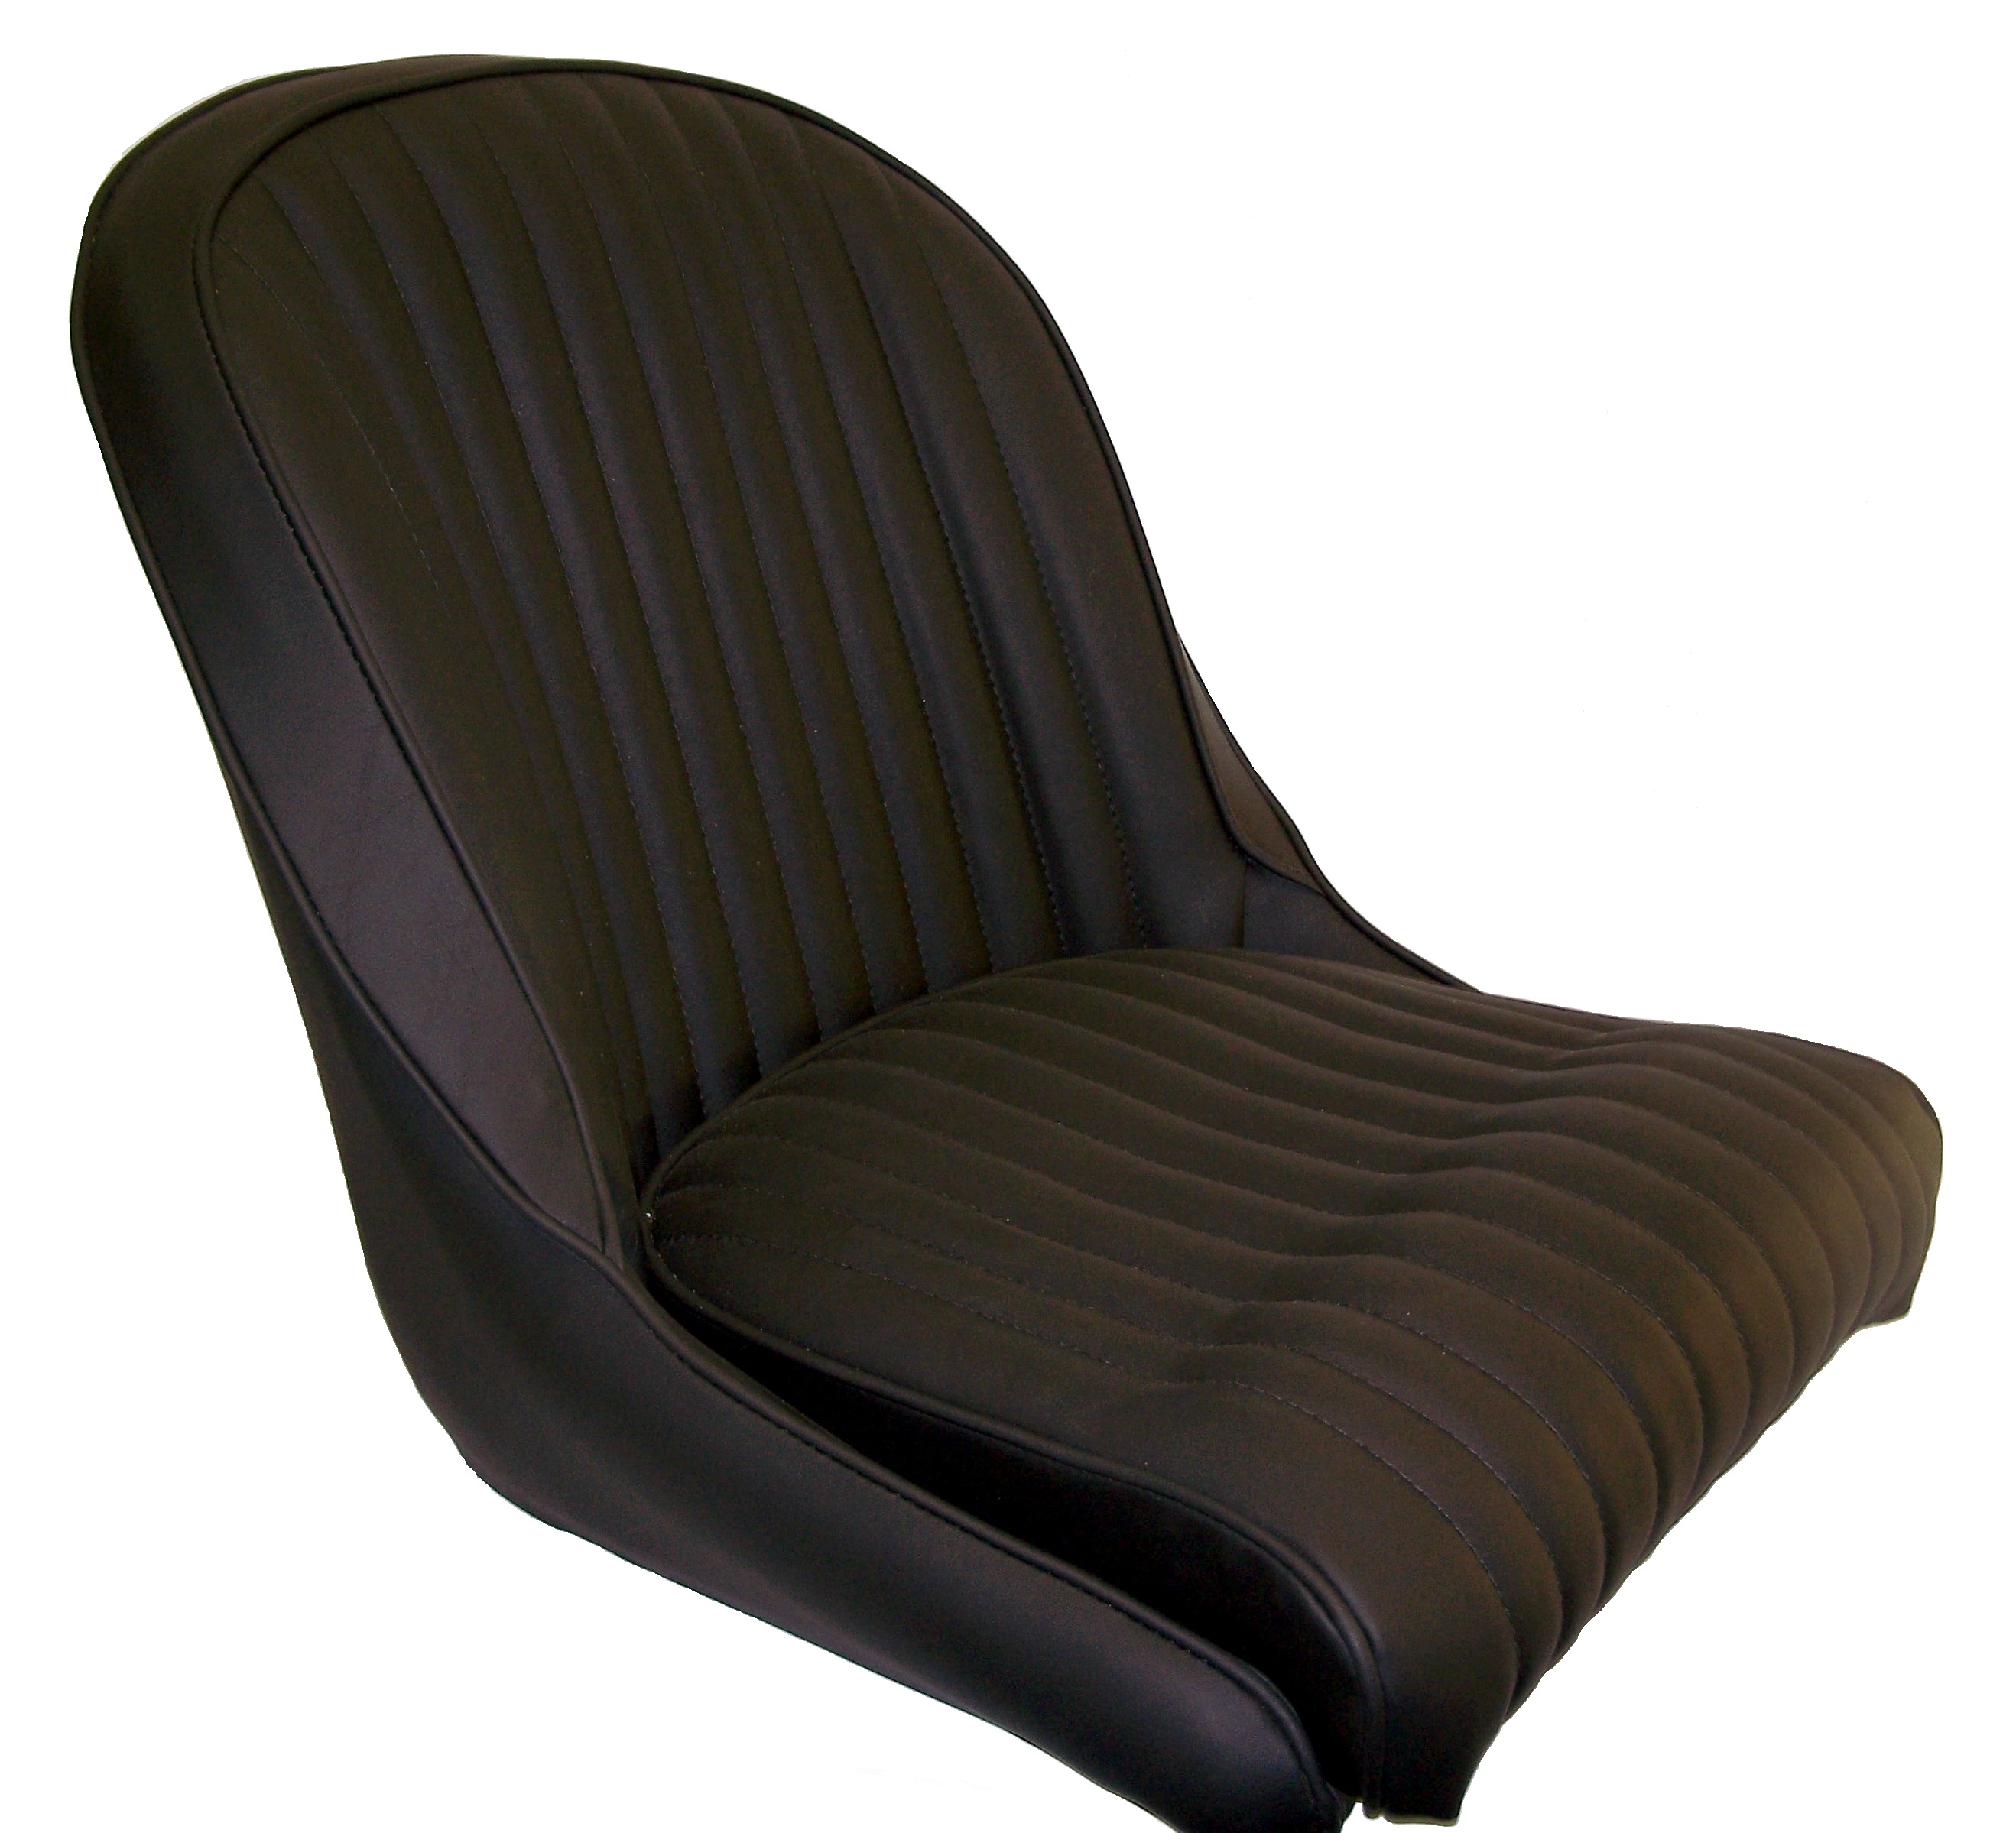 seat upholstered leather each